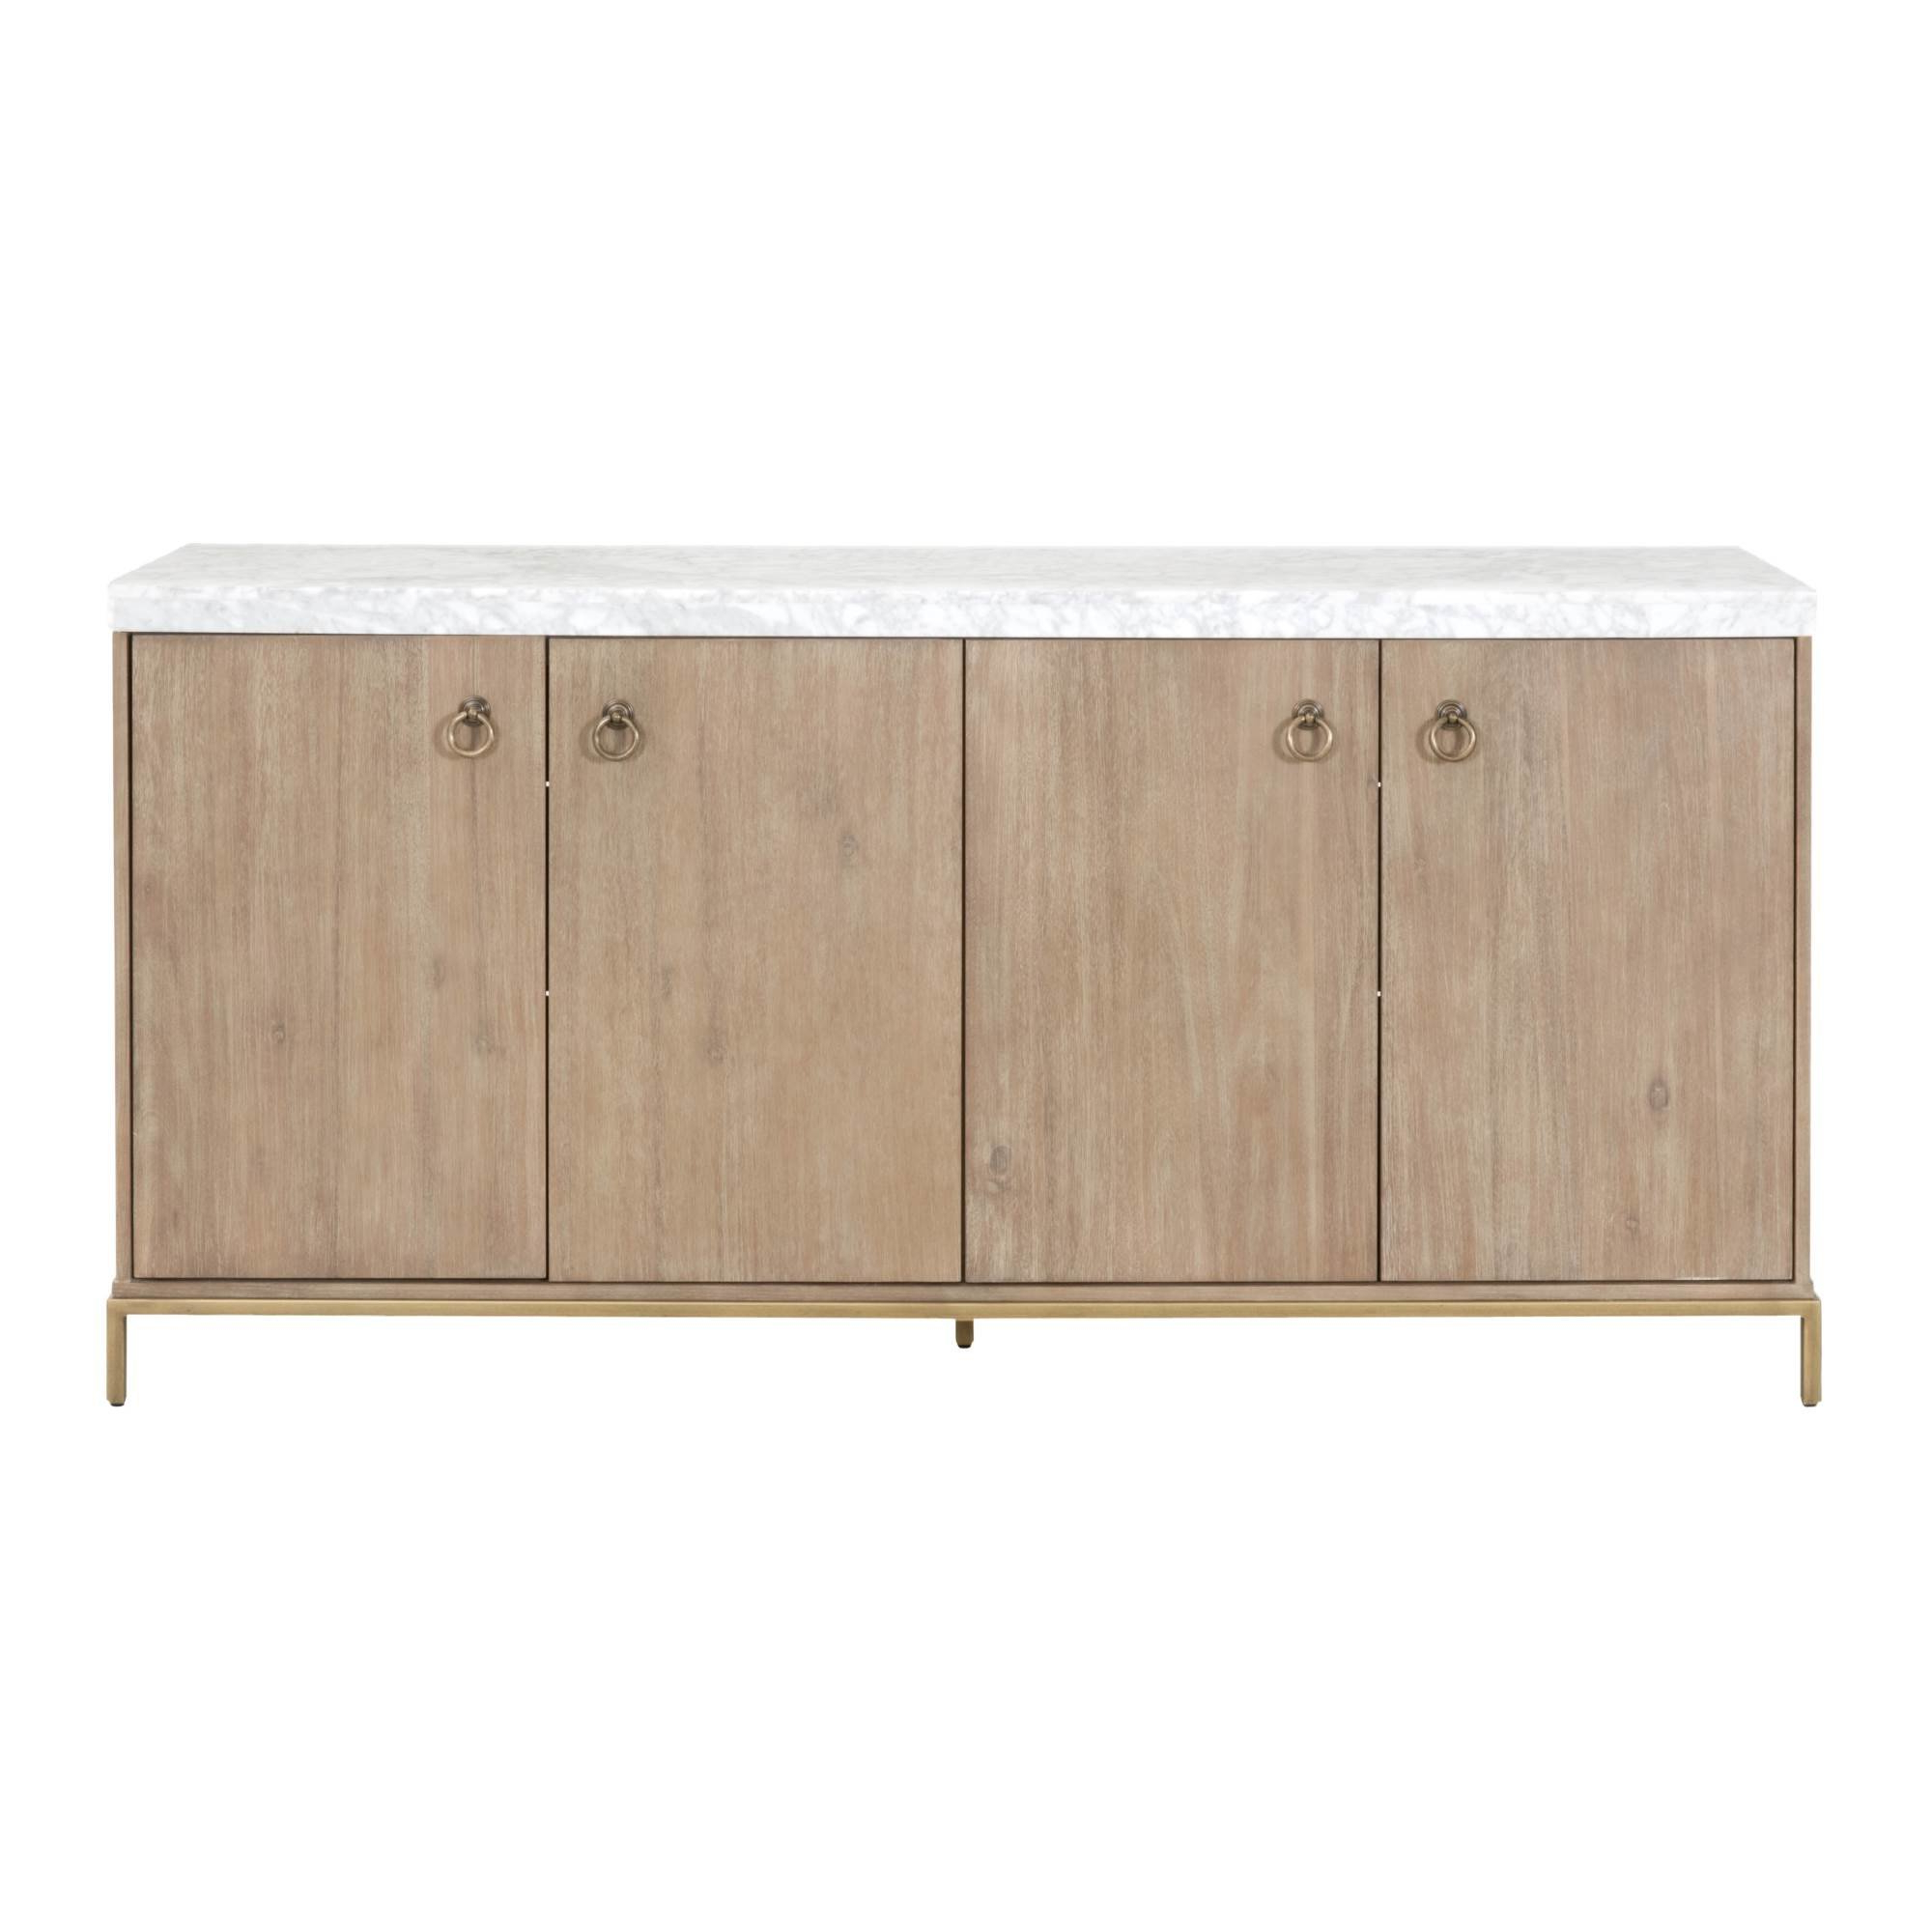 Details About Foundry Select Brookby Place Media Sideboard With Regard To Sideboards By Foundry Select (View 12 of 20)